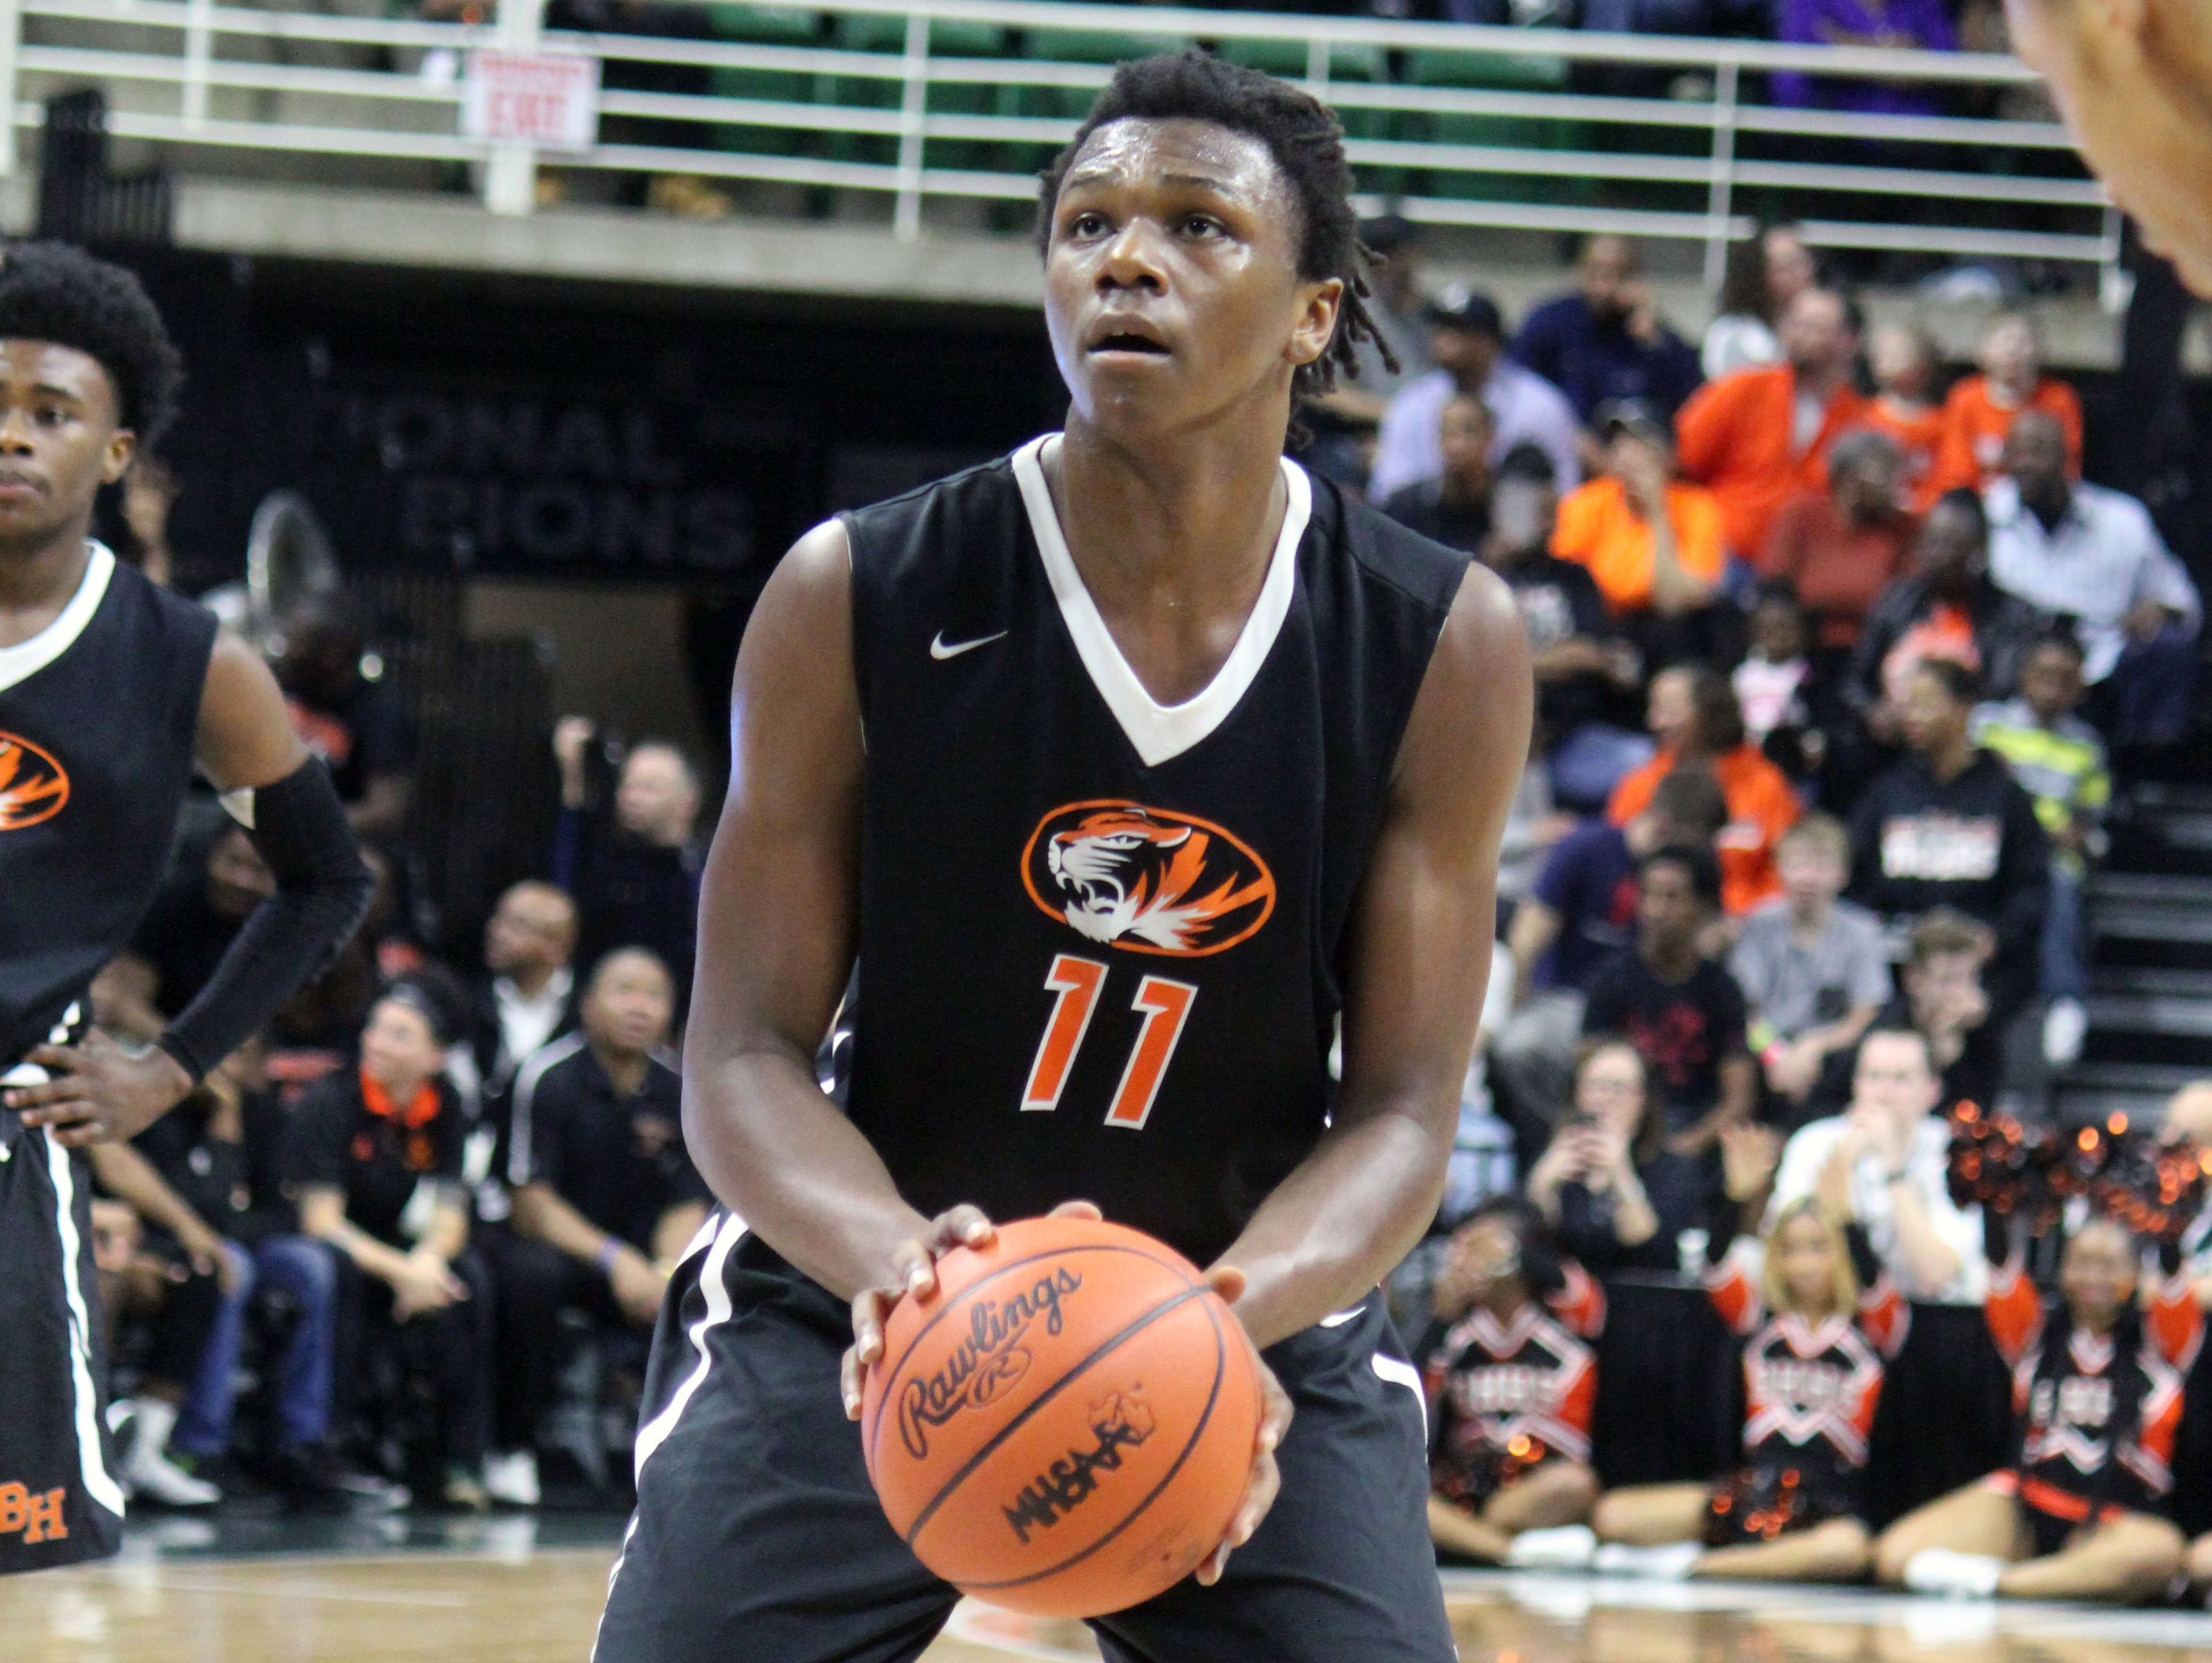 Benton Harbor center Carlos Johnson shoots a free throw during the loss in the Class B state semifinal to New Haven Friday in East Lansing.